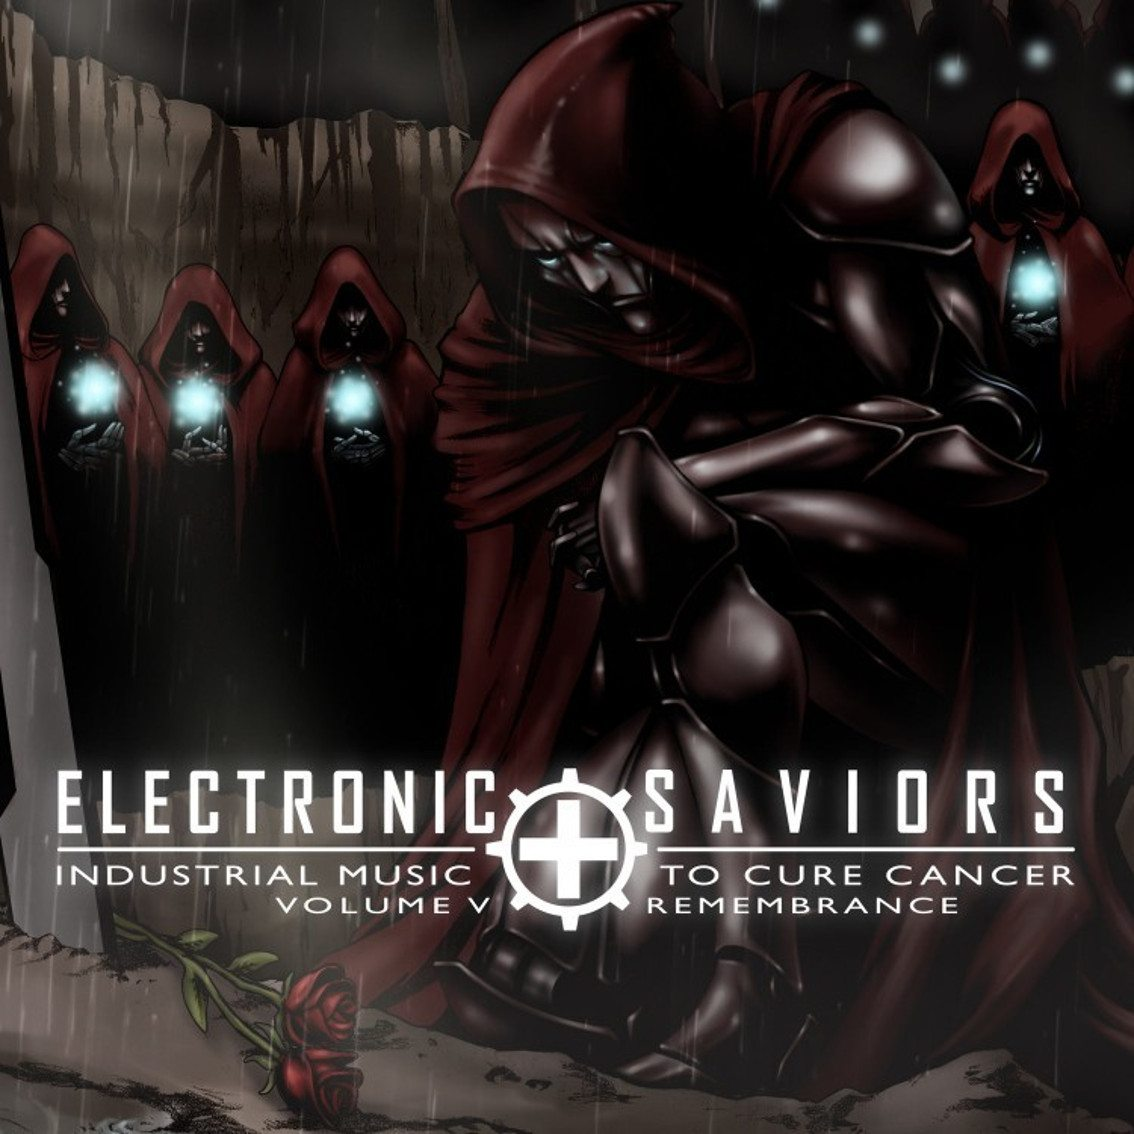 5th volume'Electronic Saviors' 6CD set finally revealed - limited distribution, get yours here